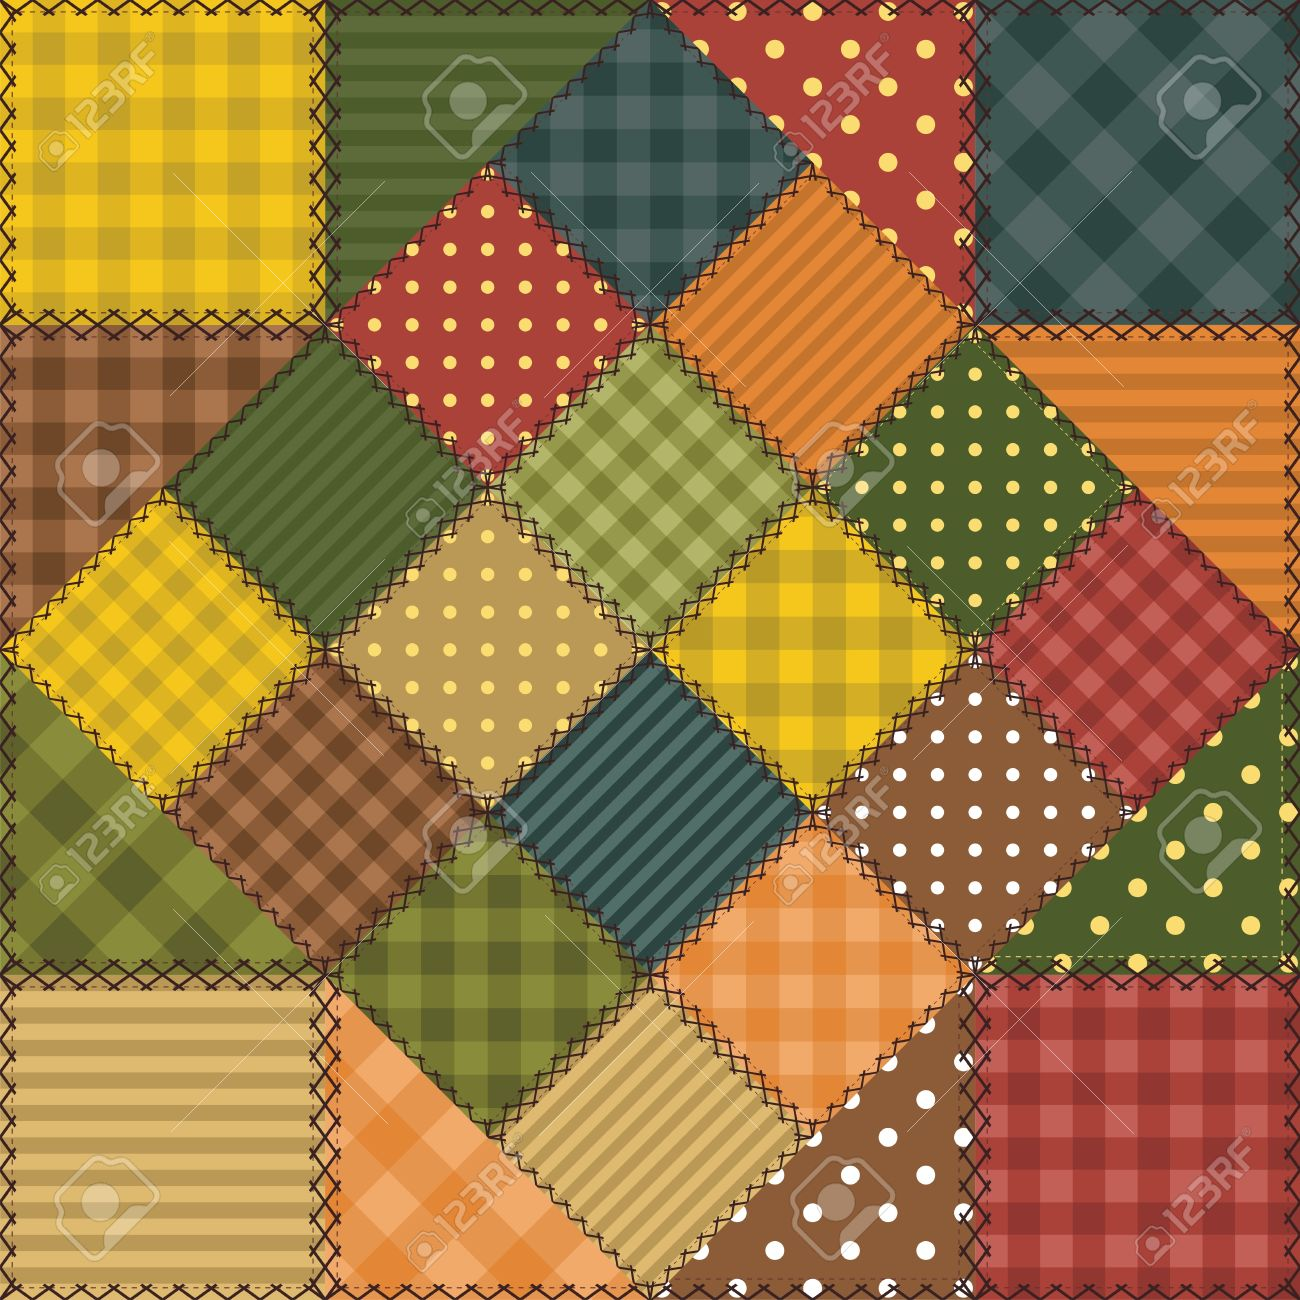 Quilt patterns clipart jpg royalty free download Texture Clip Art Free Quilt Pattern – Clipart Free Download jpg royalty free download